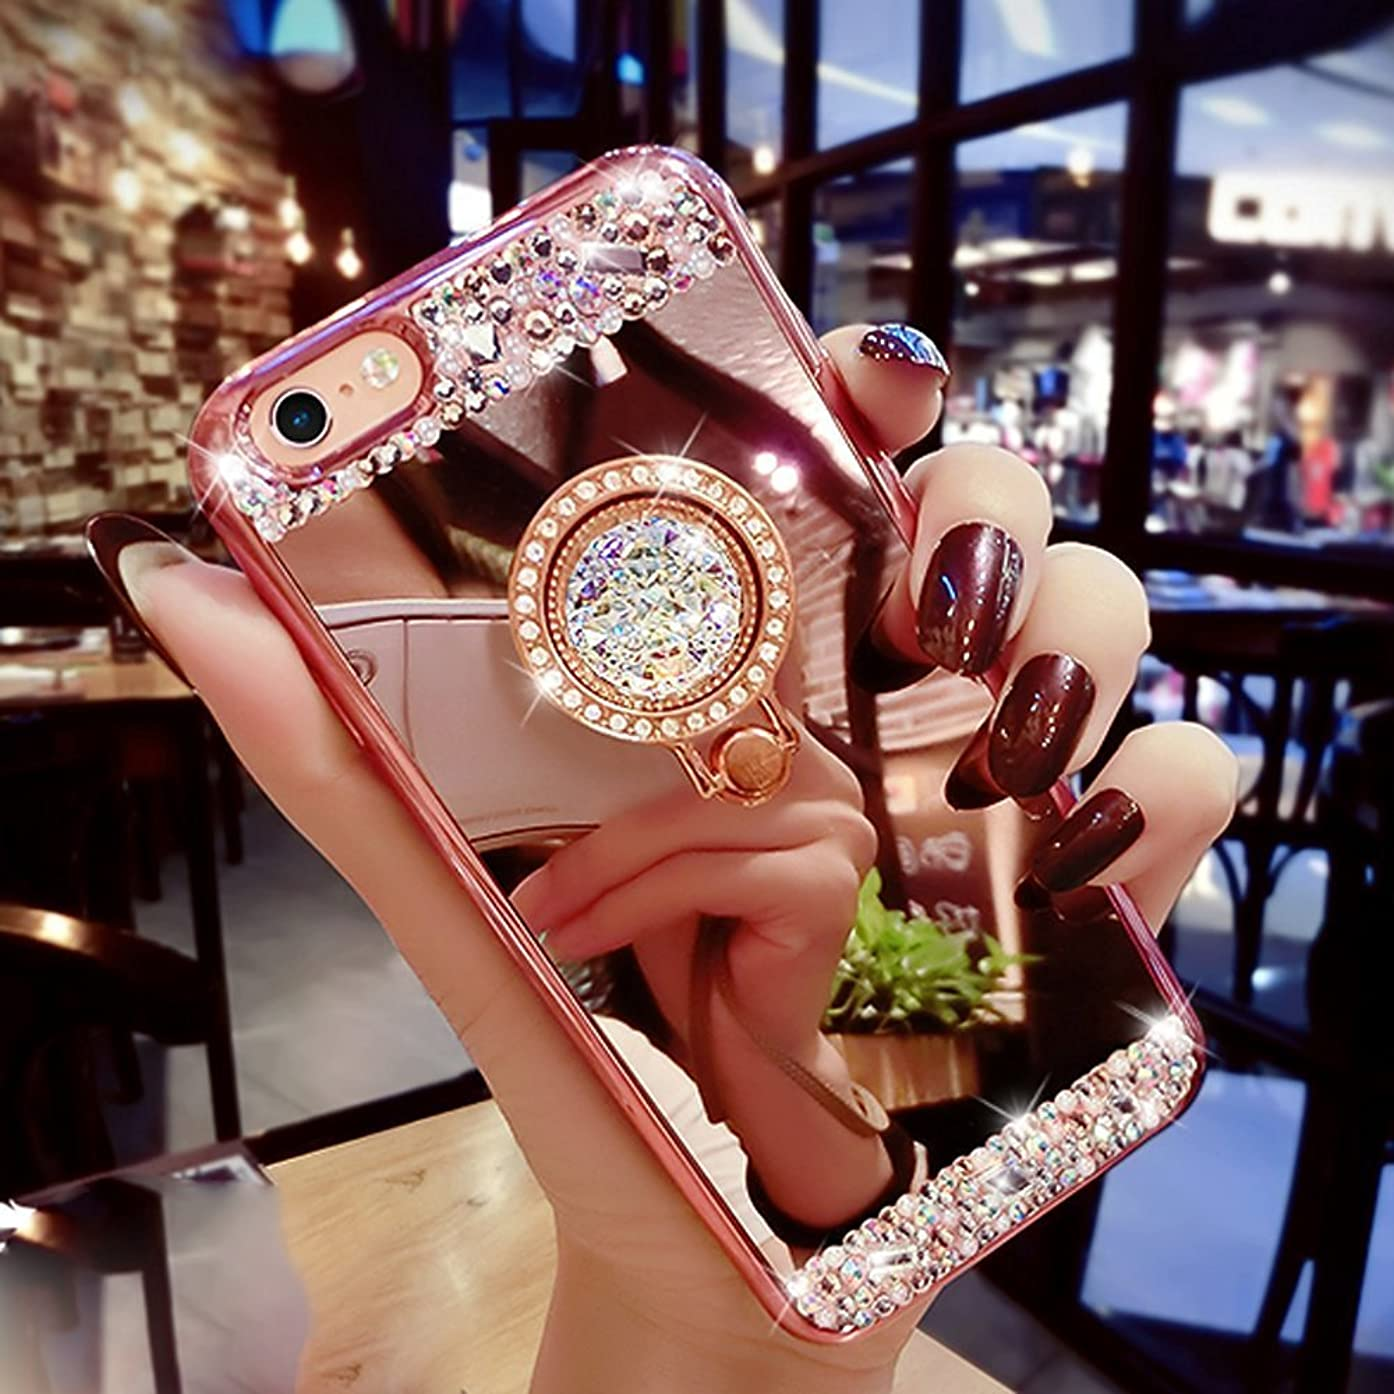 iPhone 8 Plus Case ,MACBOU Fashion Crystal Rhinestone Soft Rubber Bumper Bling Diamond Glitter Mirror Case Makeup With Ring Stand Holder Case Cover for iPhone 8 Plus (Rose Gold)